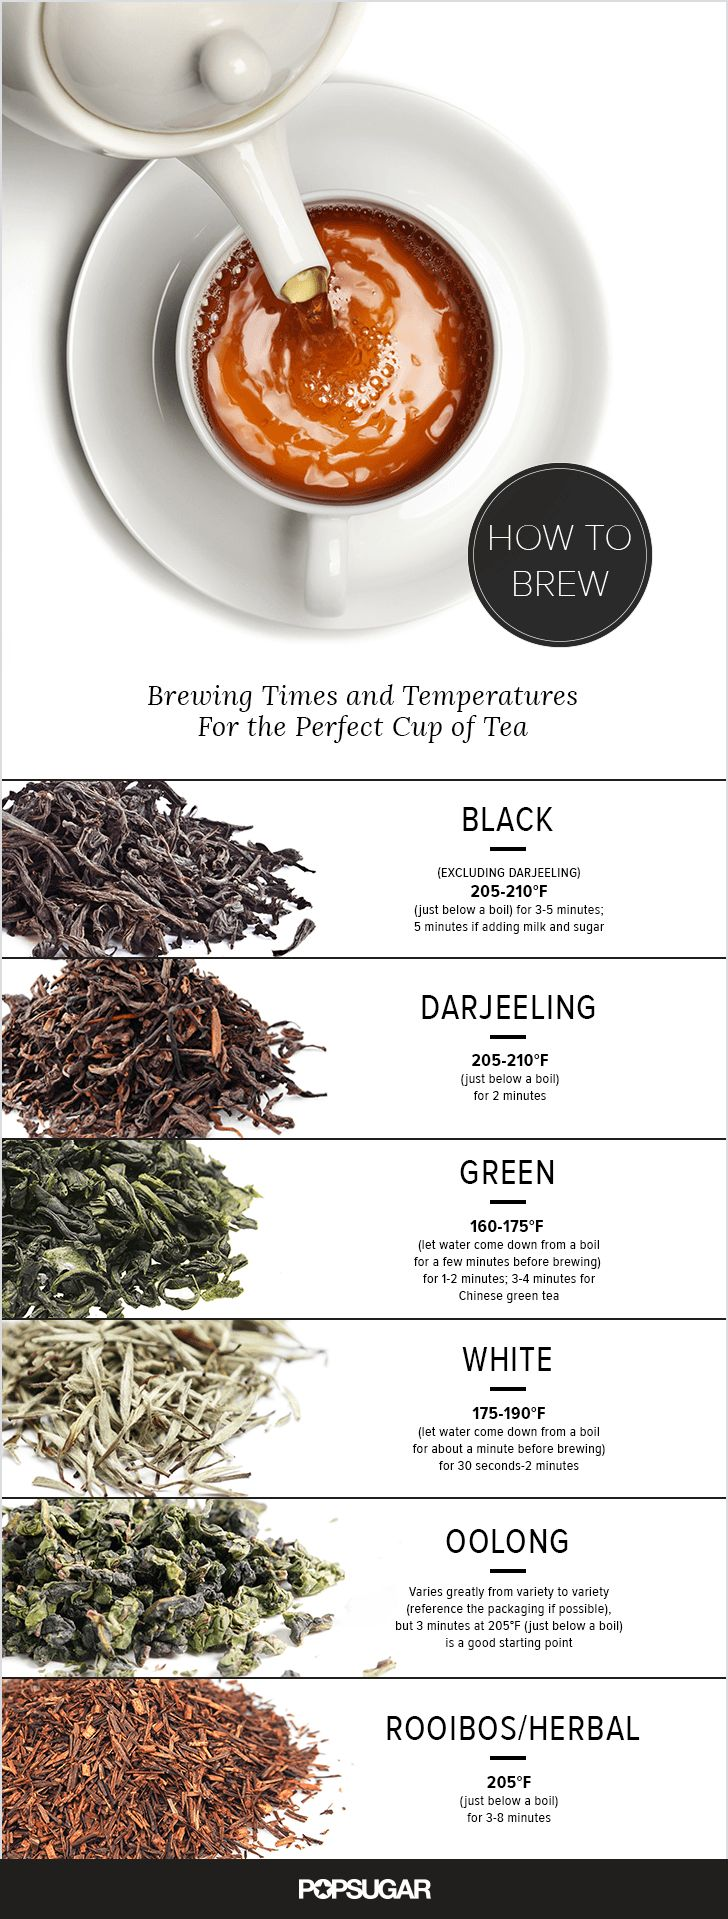 All teas were not created equal. We've got a guide to help you learn how to steep every kind of tea, because there actually in a difference between darjeeling and green.